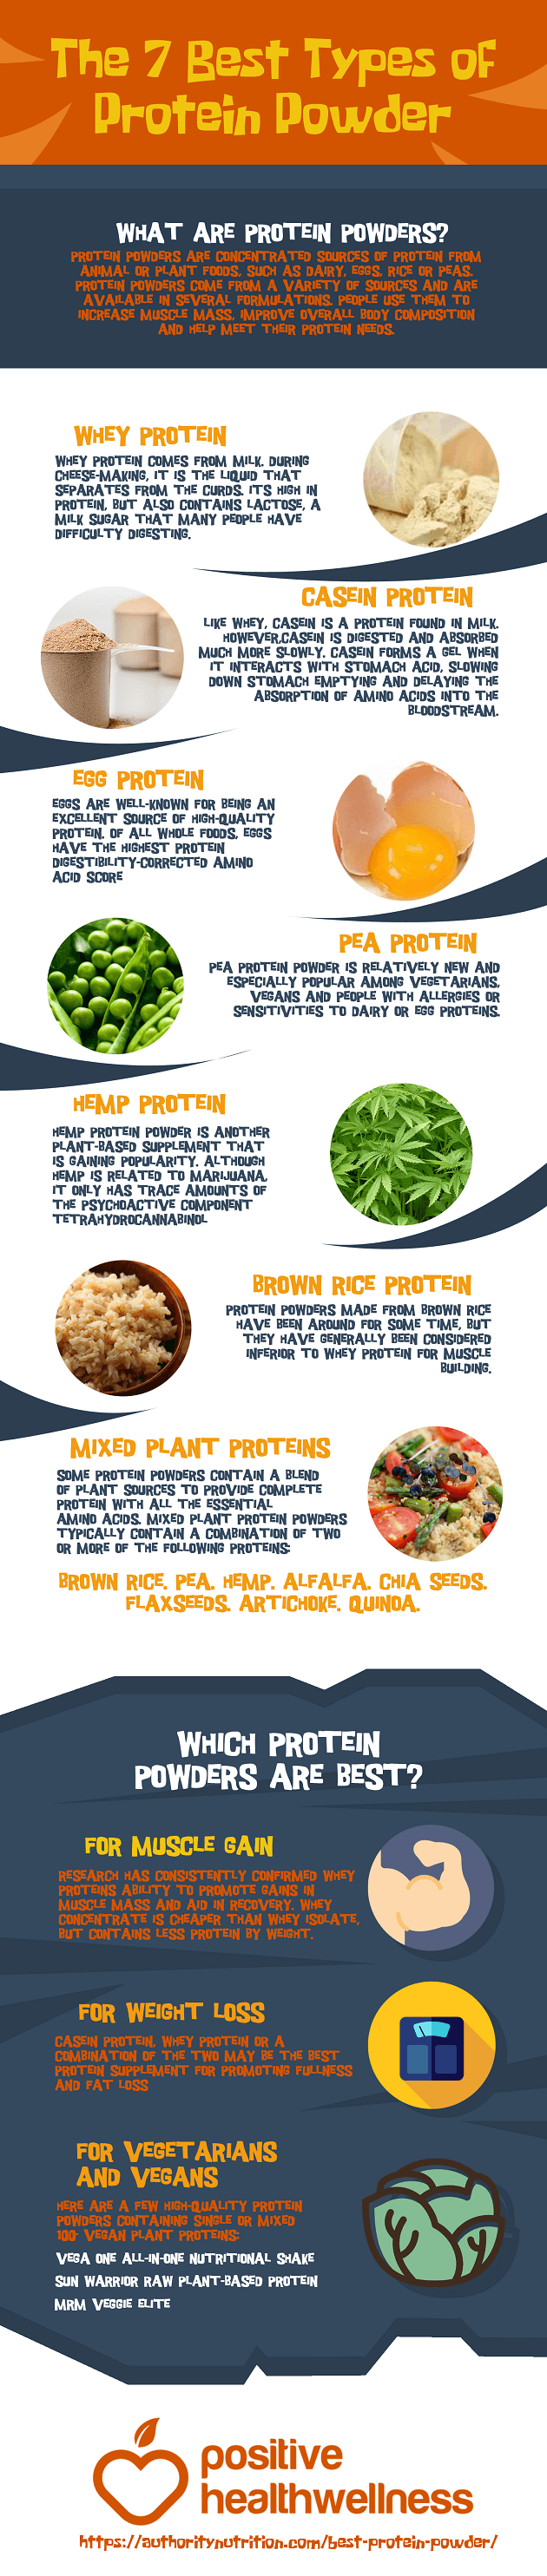 The 7 Best Types Of Protein Powder – Infographic